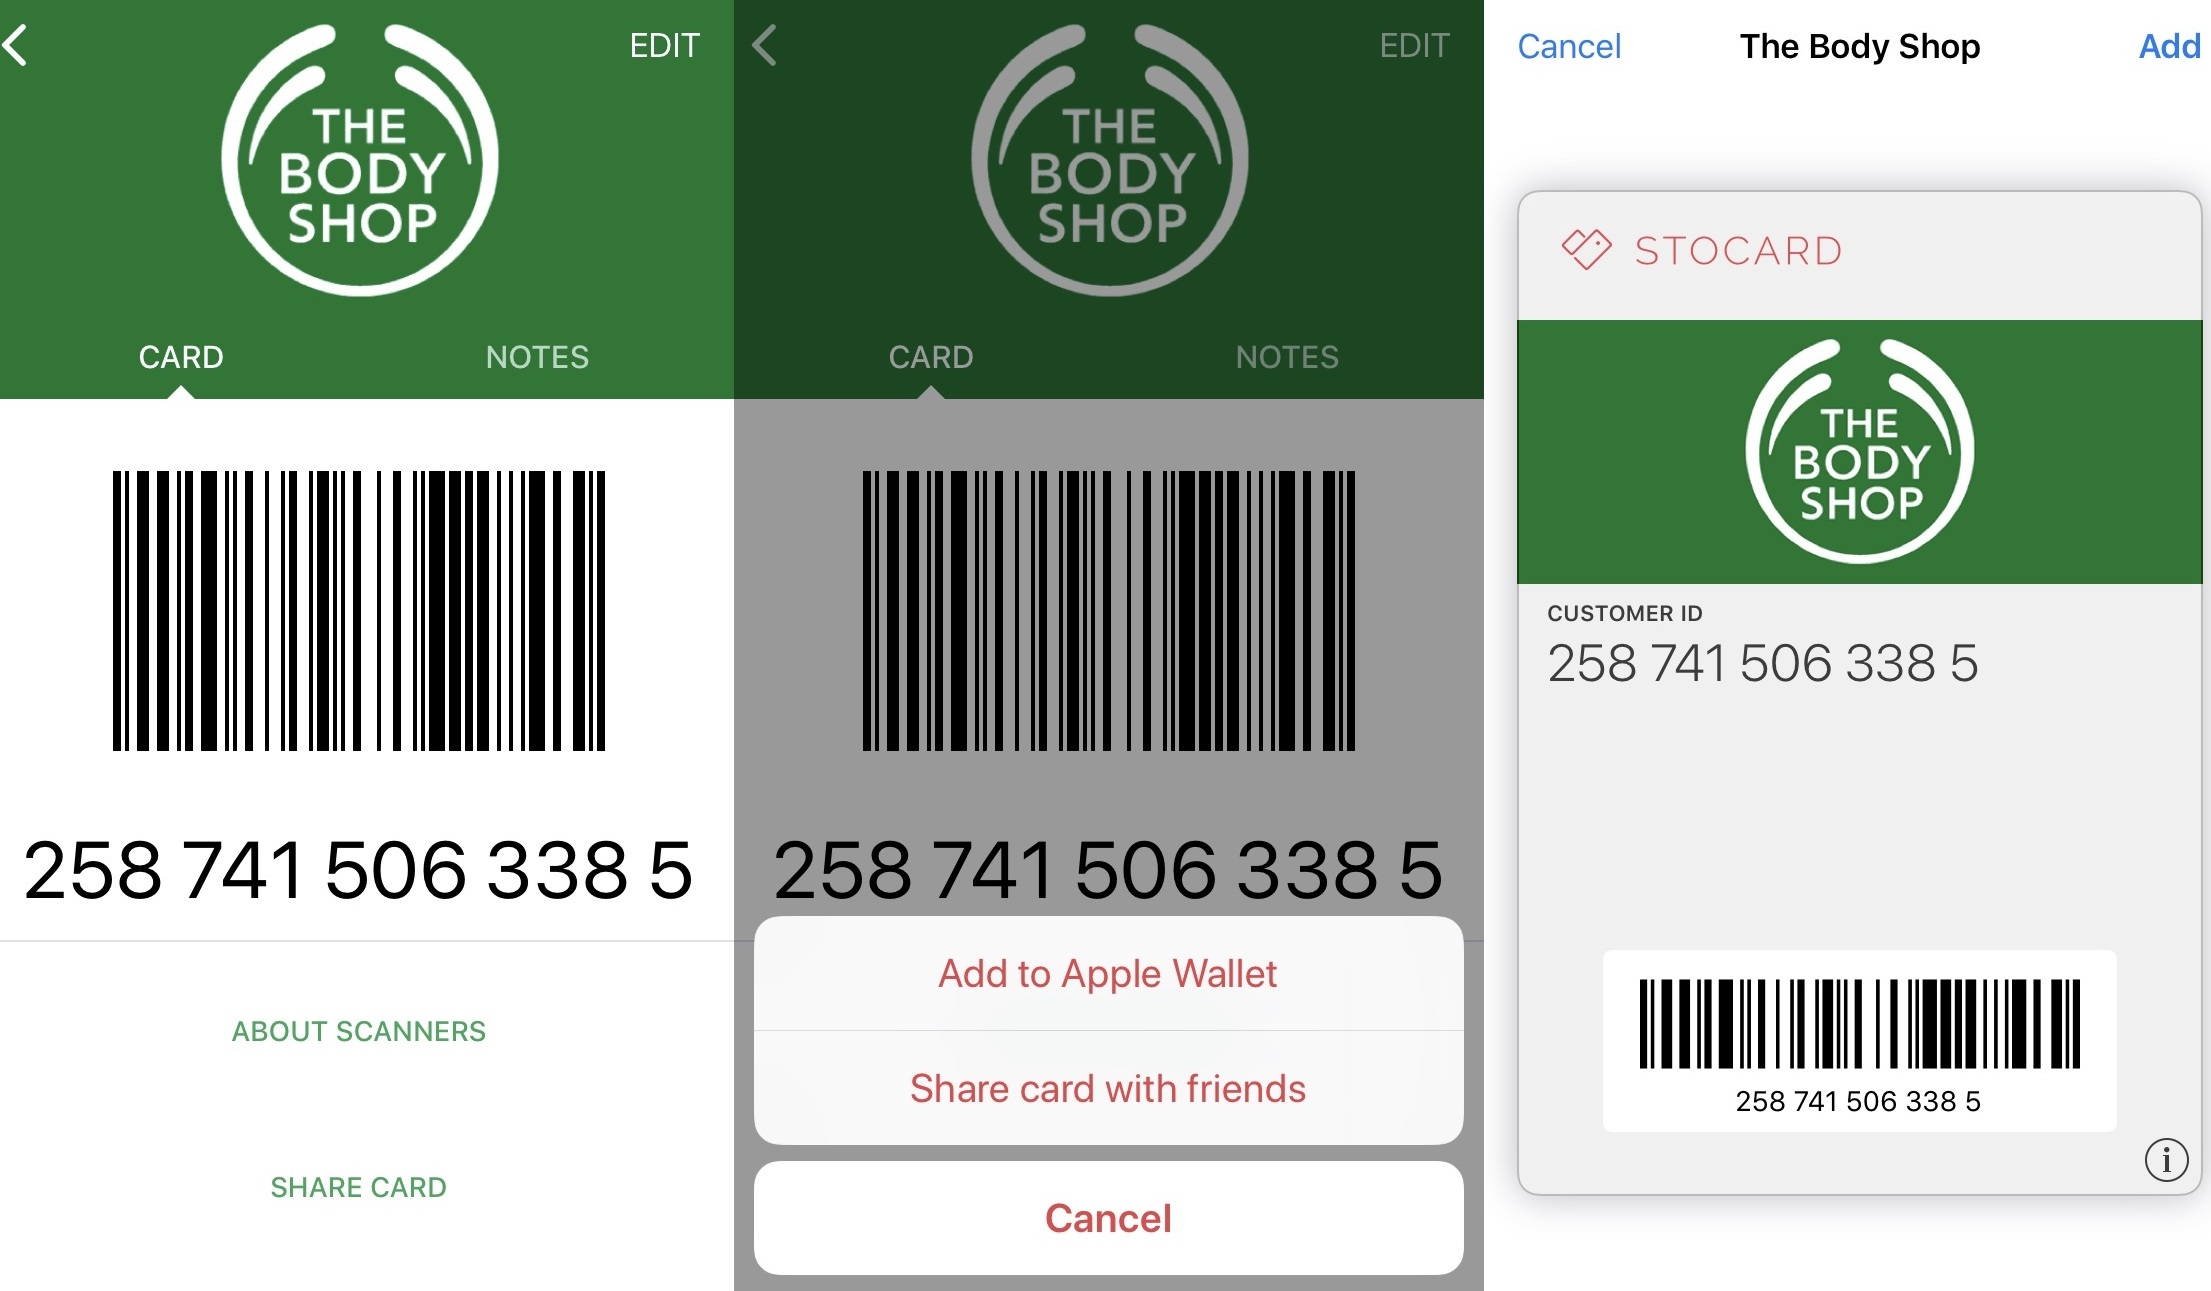 Can I add my cards in Stocard to Apple Wallet? – User Support